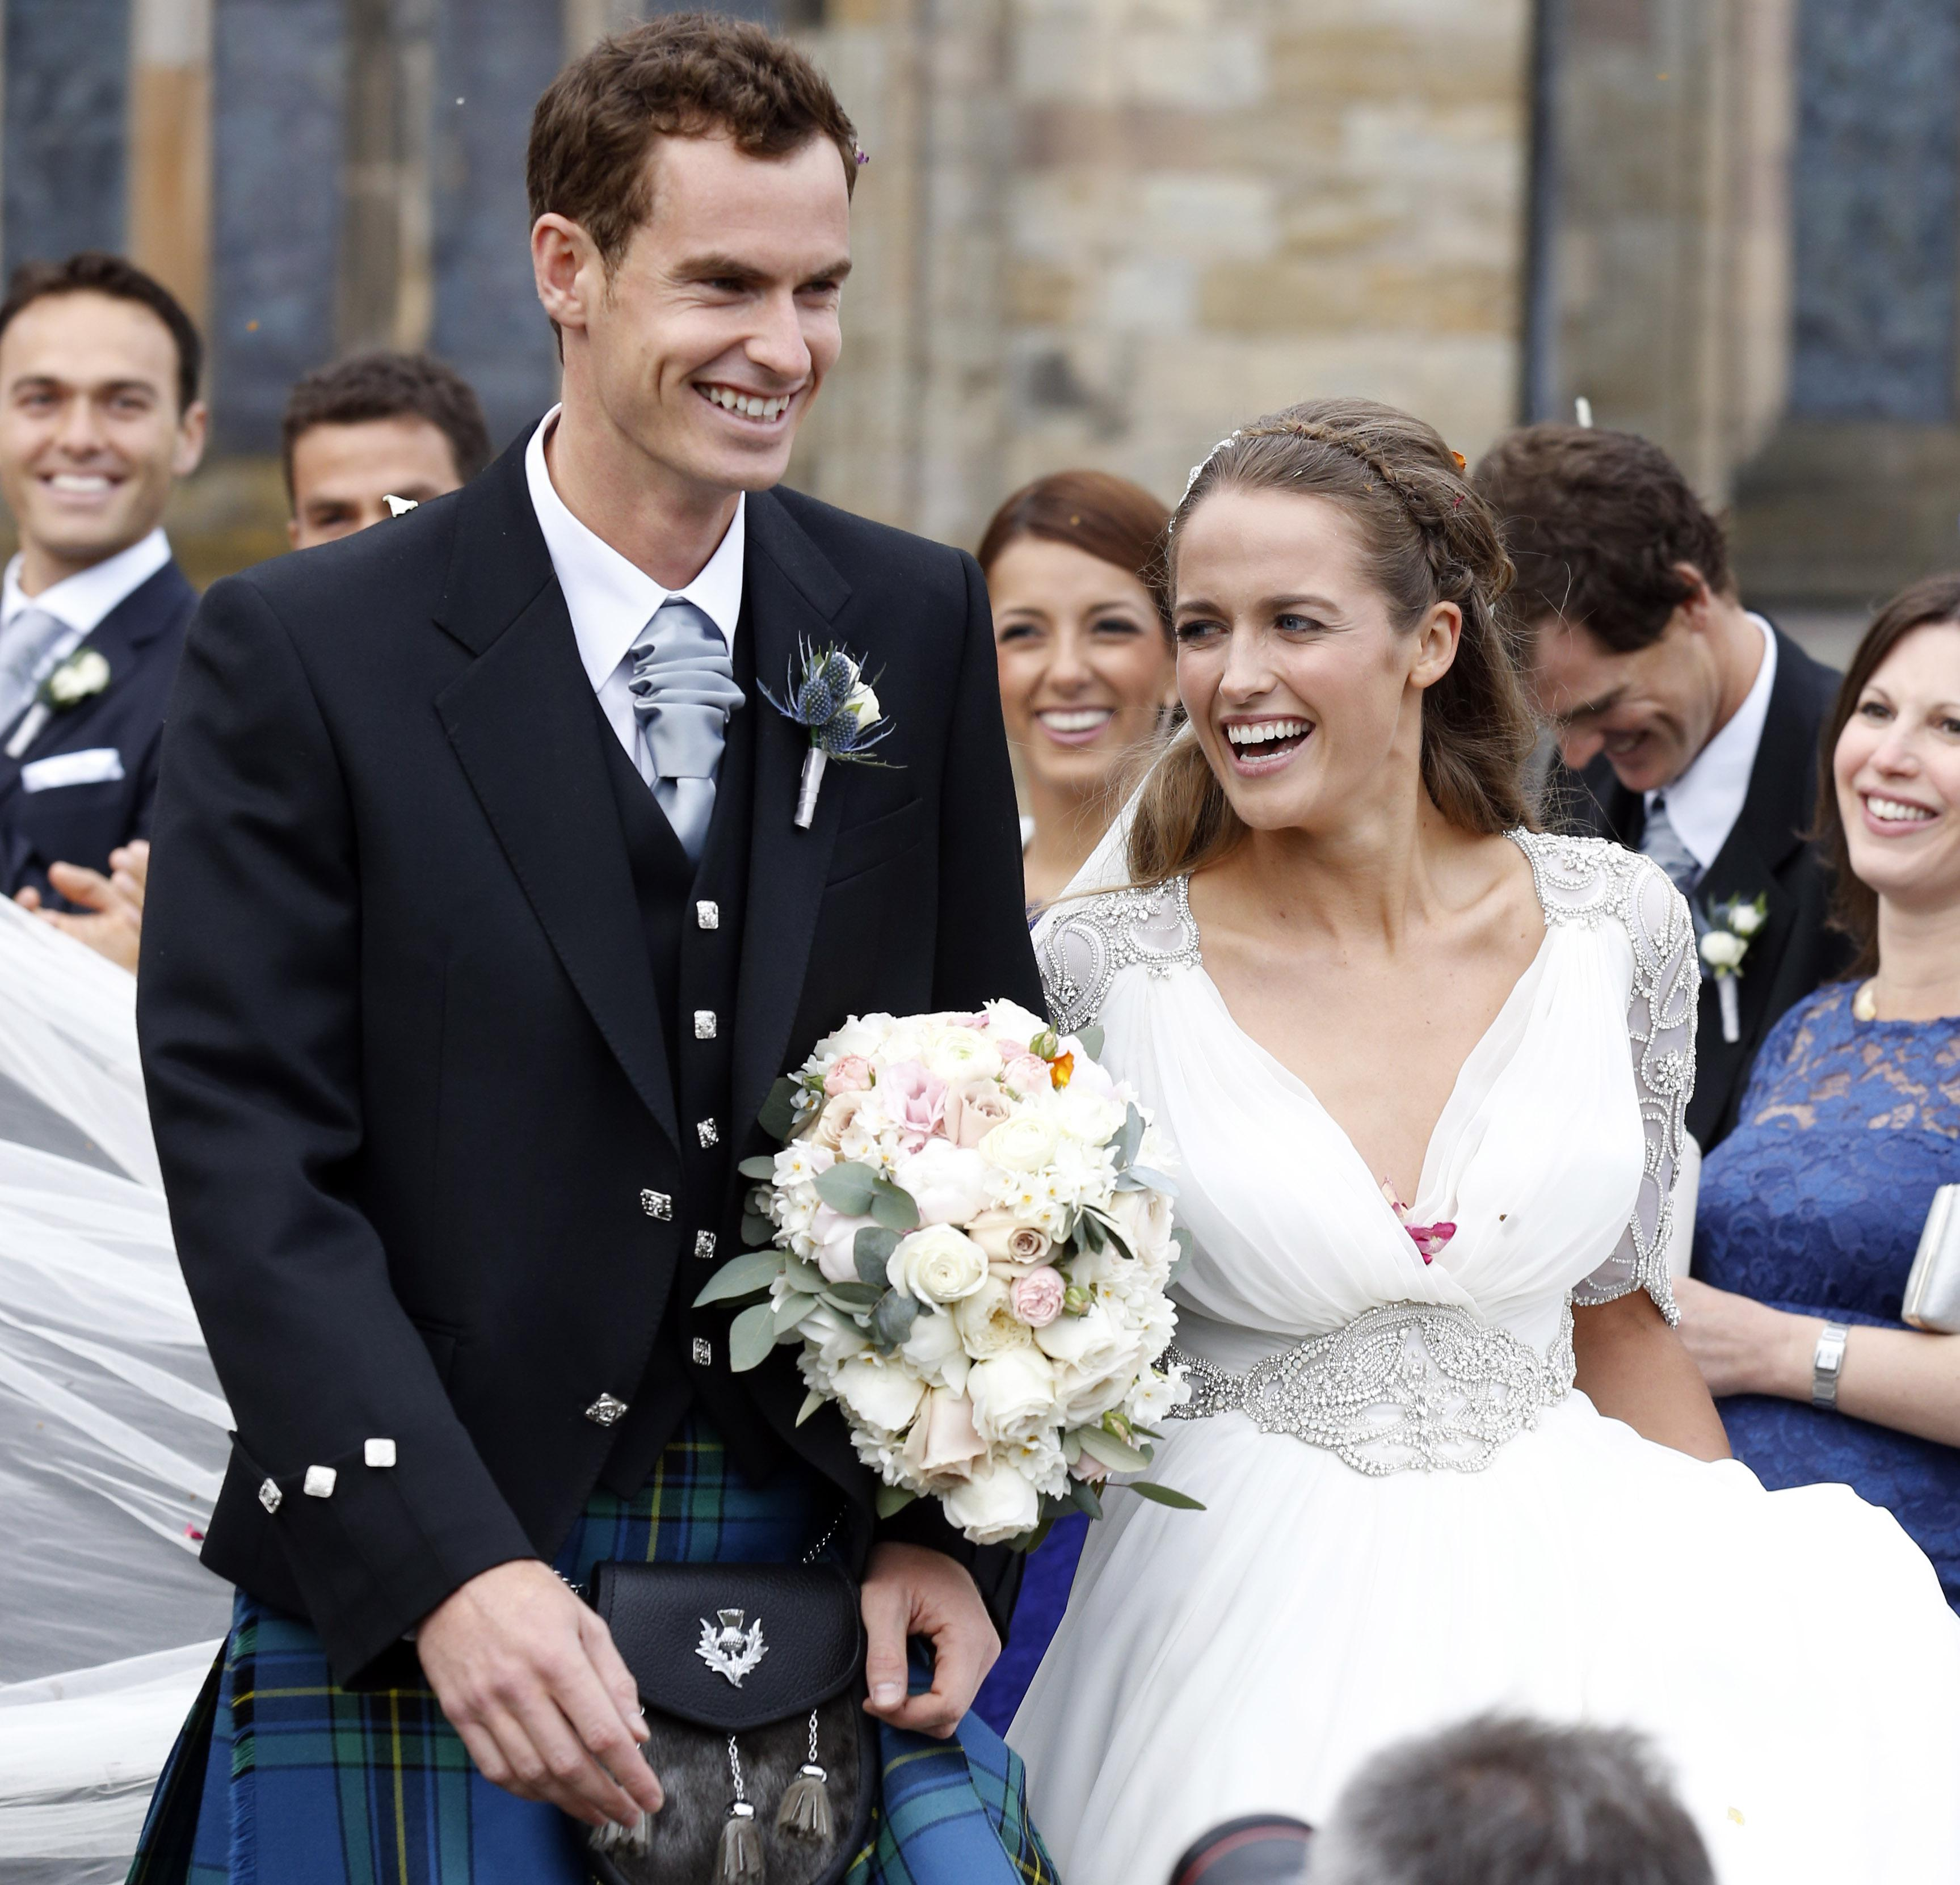 Murray and wife Kim have two young daughters, who woke up and put an end to their dad's Twitter session